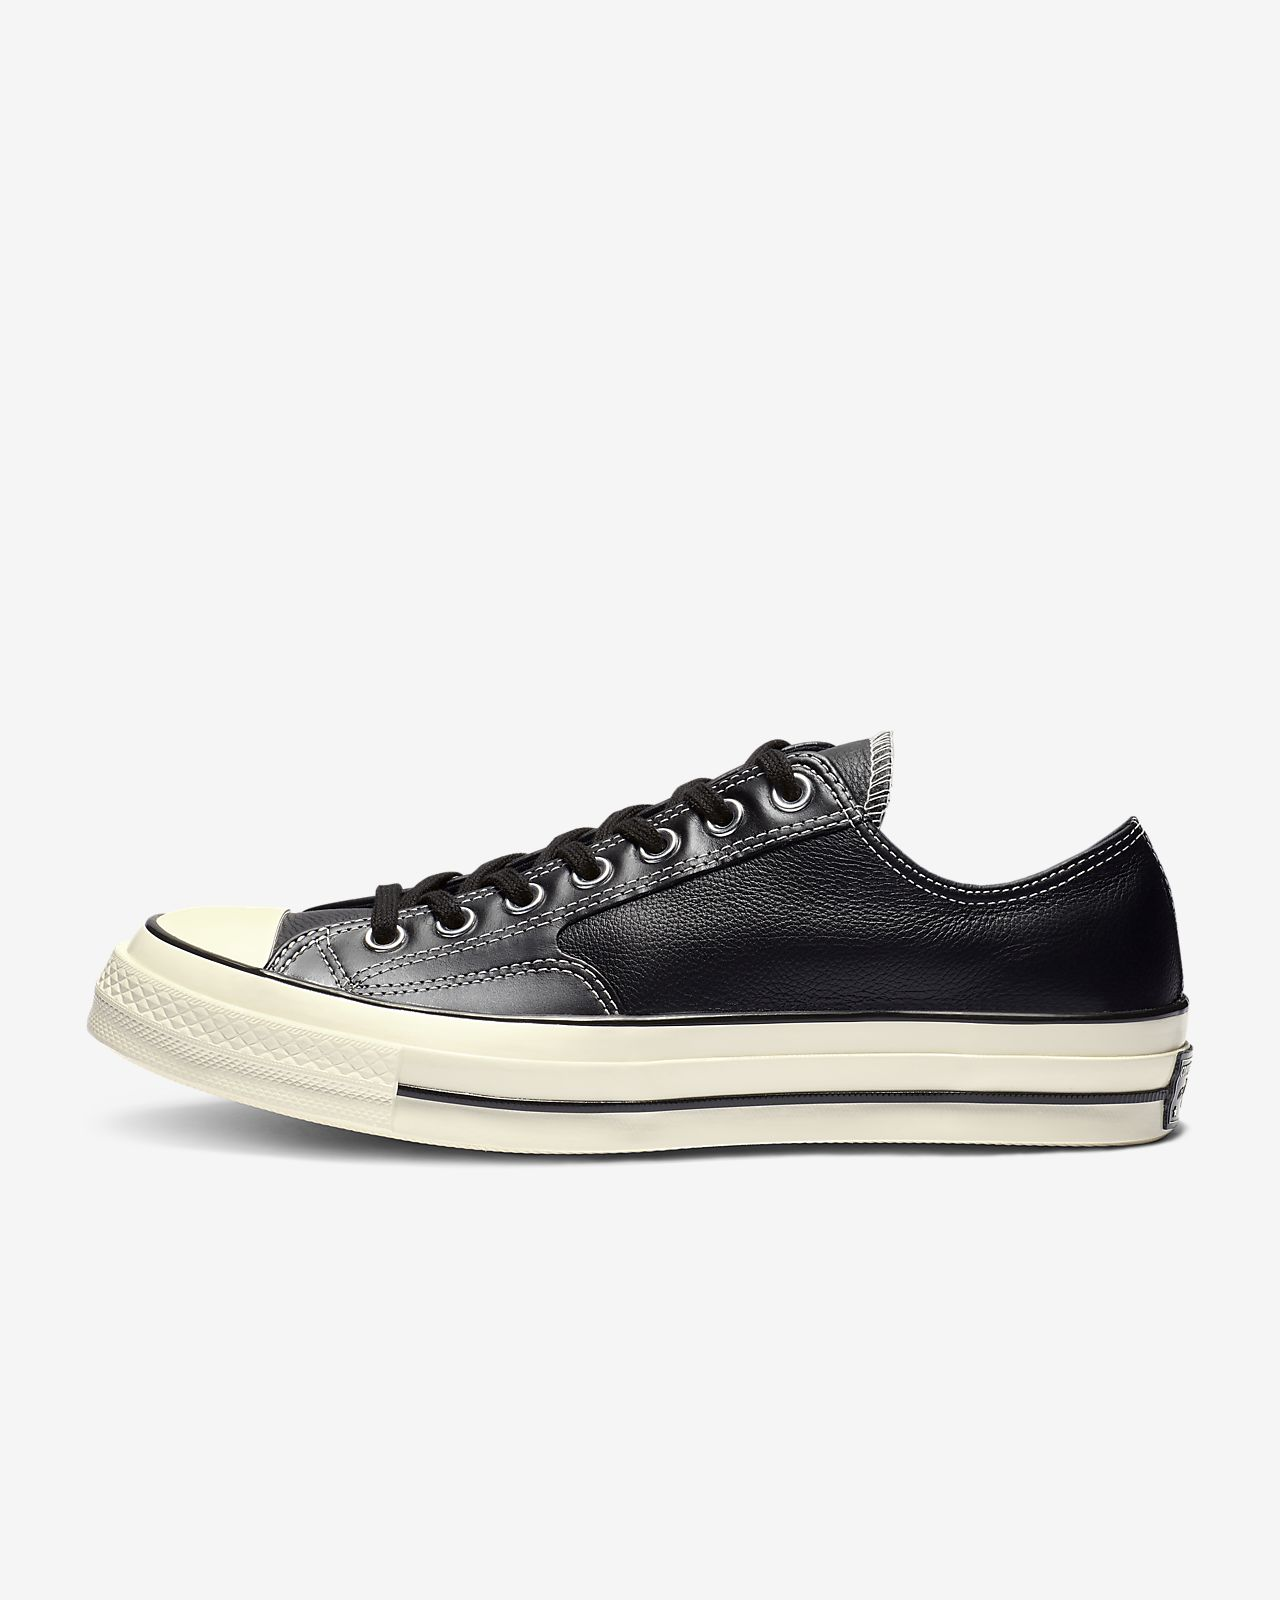 Chuck 70 Luxe Leather Low Top Unisex Shoe